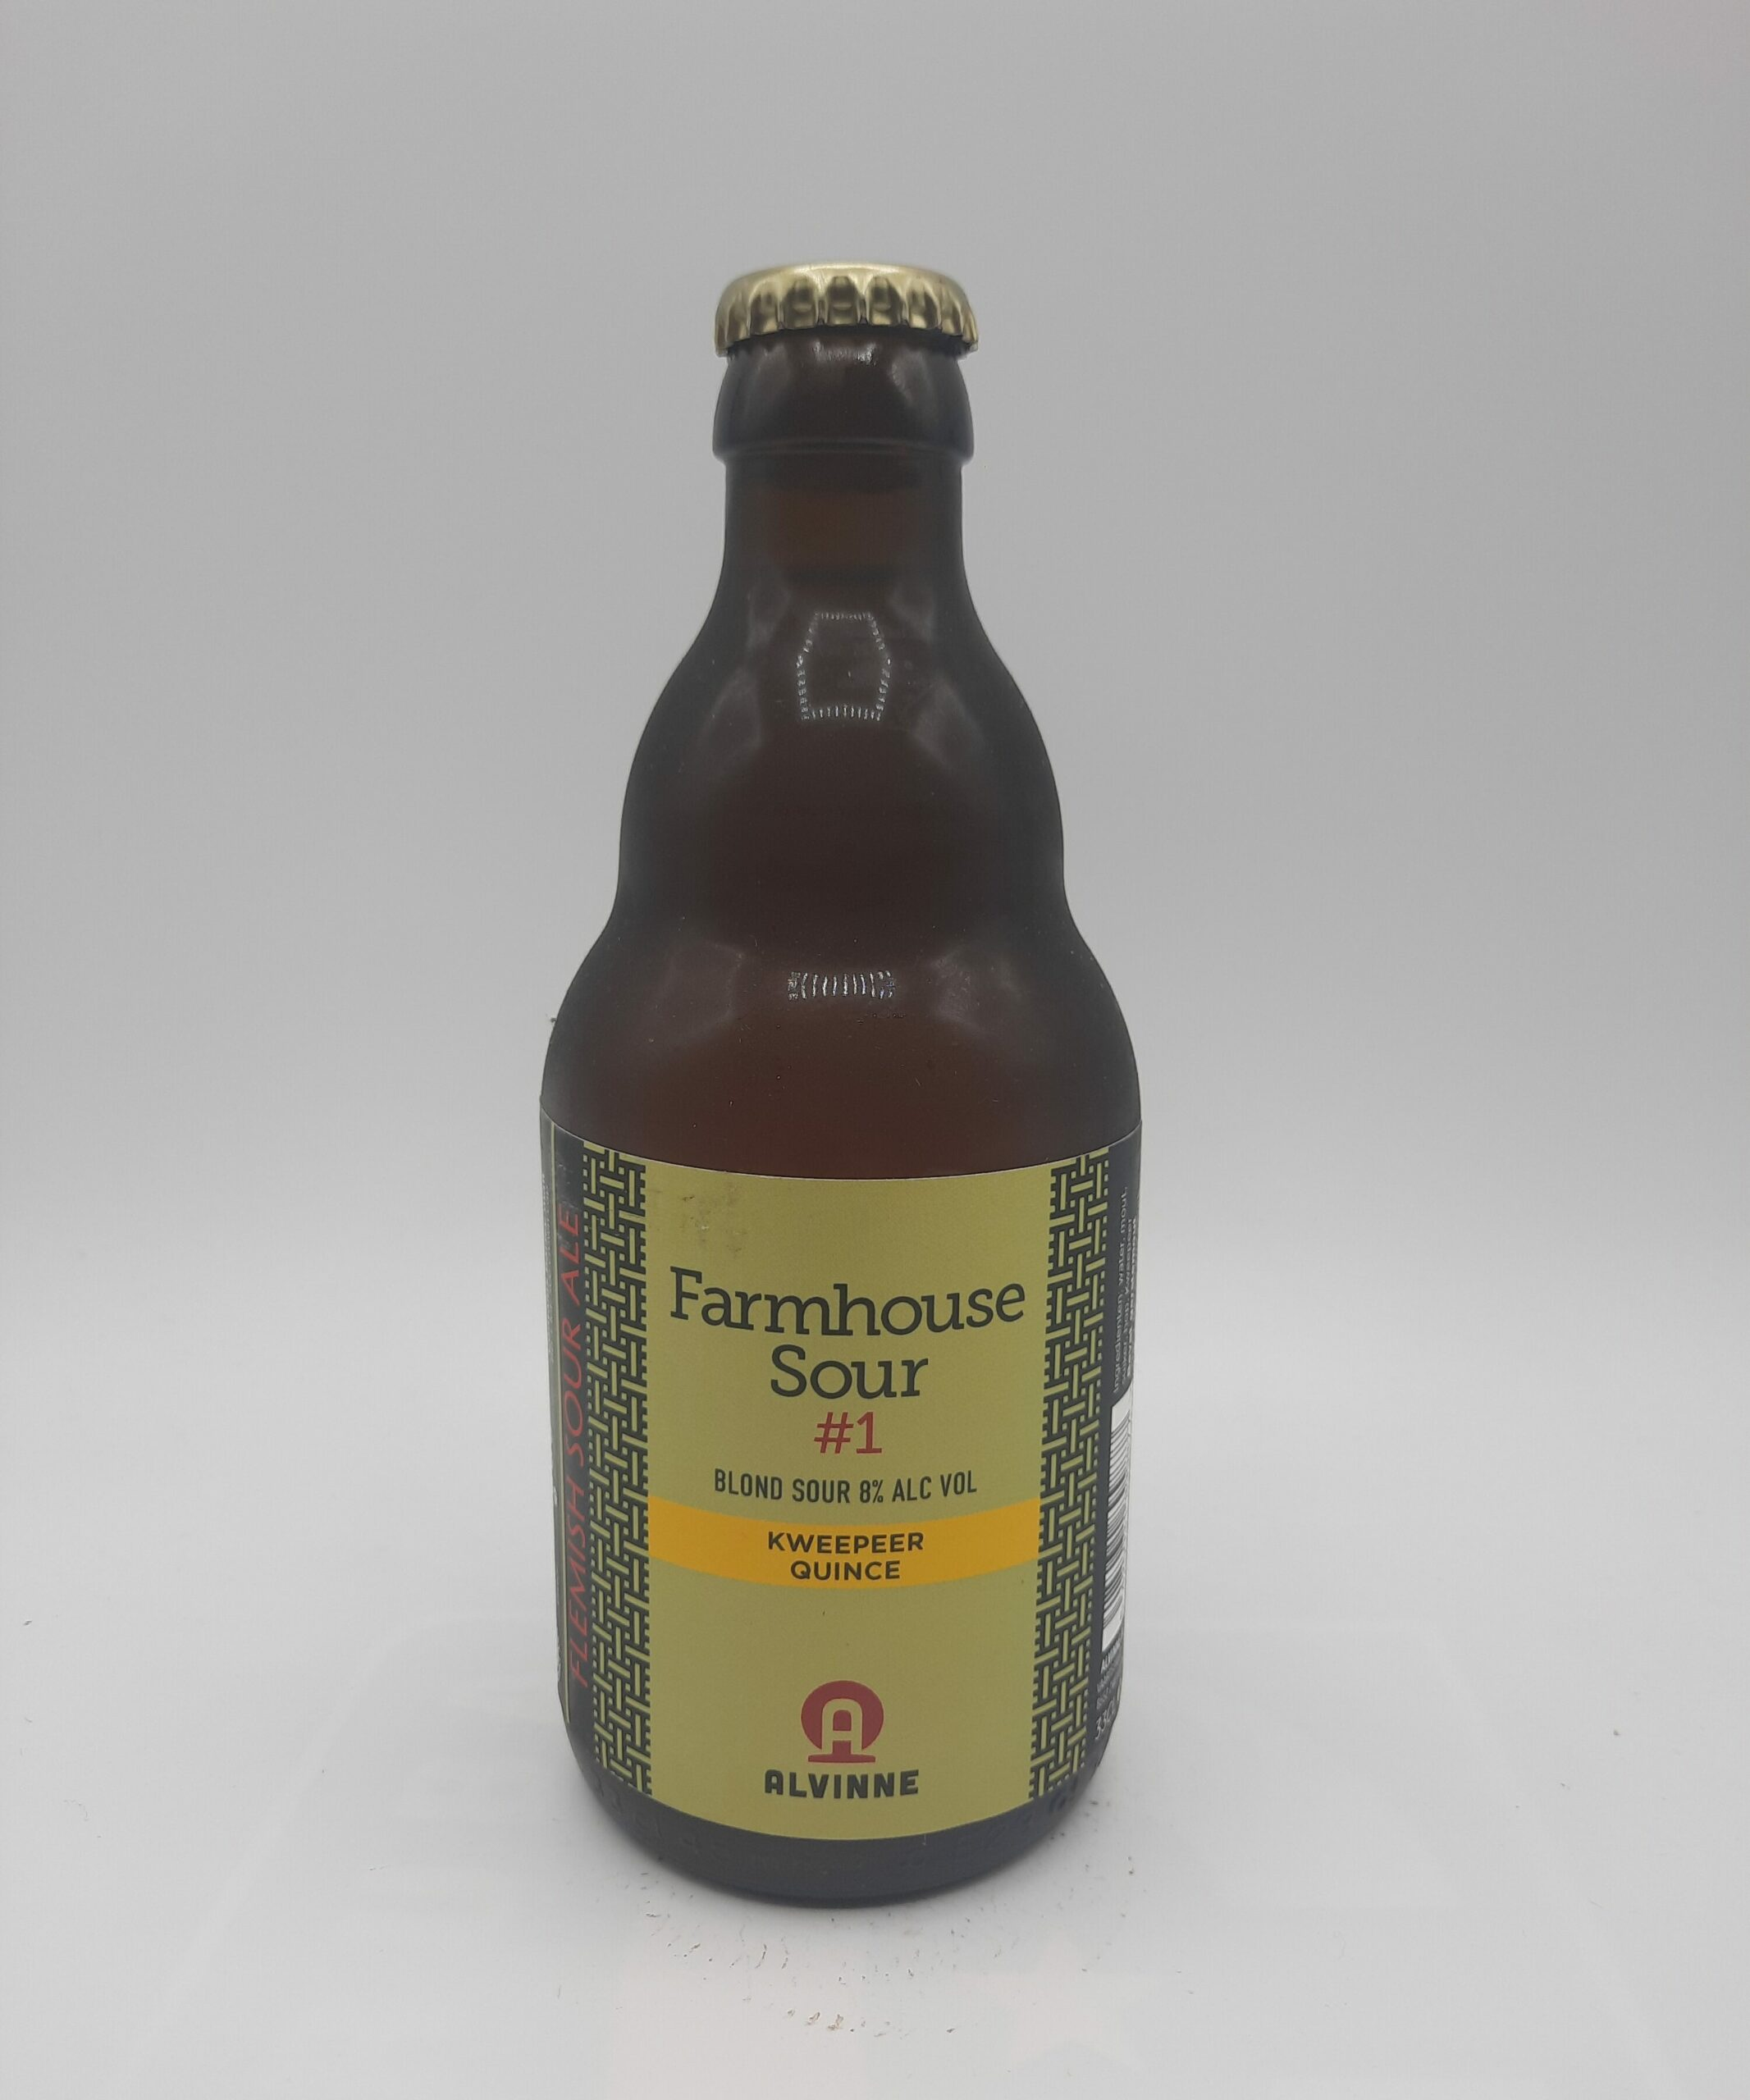 Image Farmhouse sour #1 Kweepeer